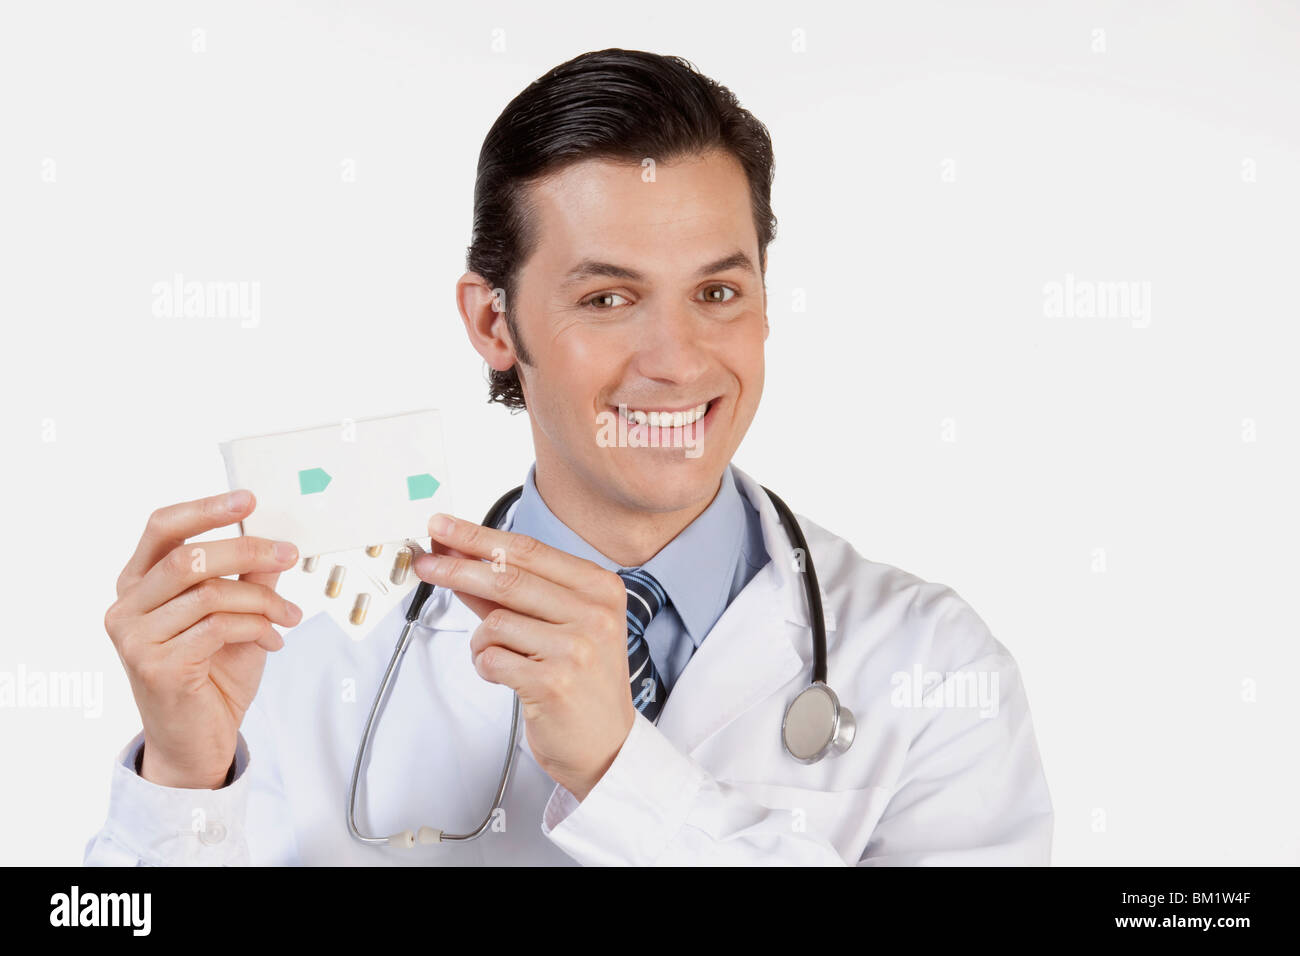 Portrait of a doctor holding a pack of medicine - Stock Image